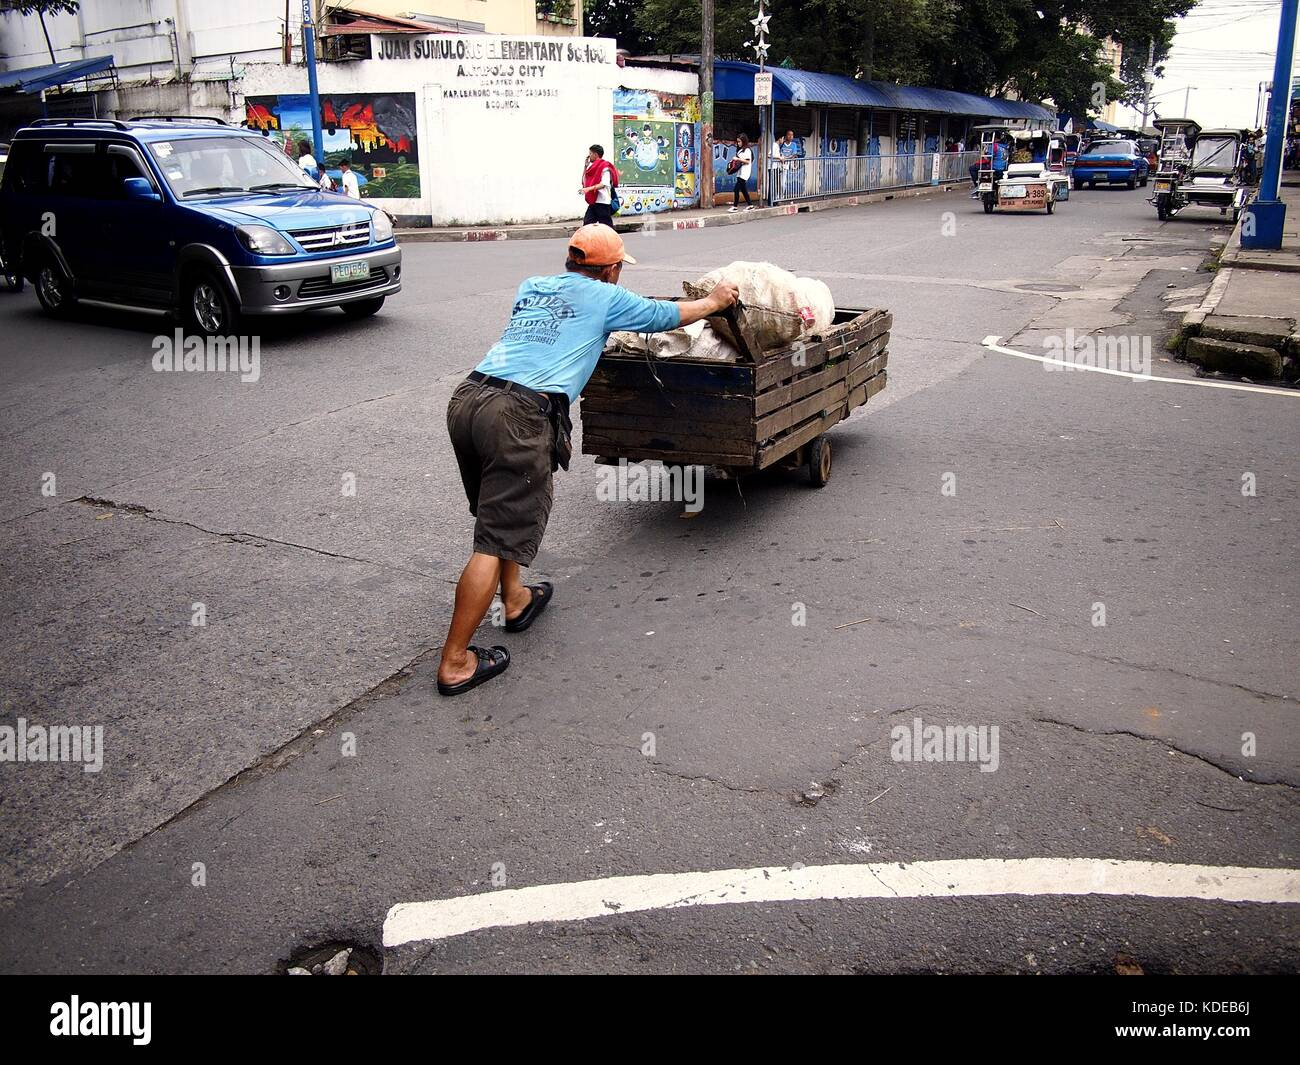 ANTIPOLO CITY, PHILIPPINES - OCTOBER 9, 2017: A recyclable materials collector pushes his wooden cart across a street. - Stock Image